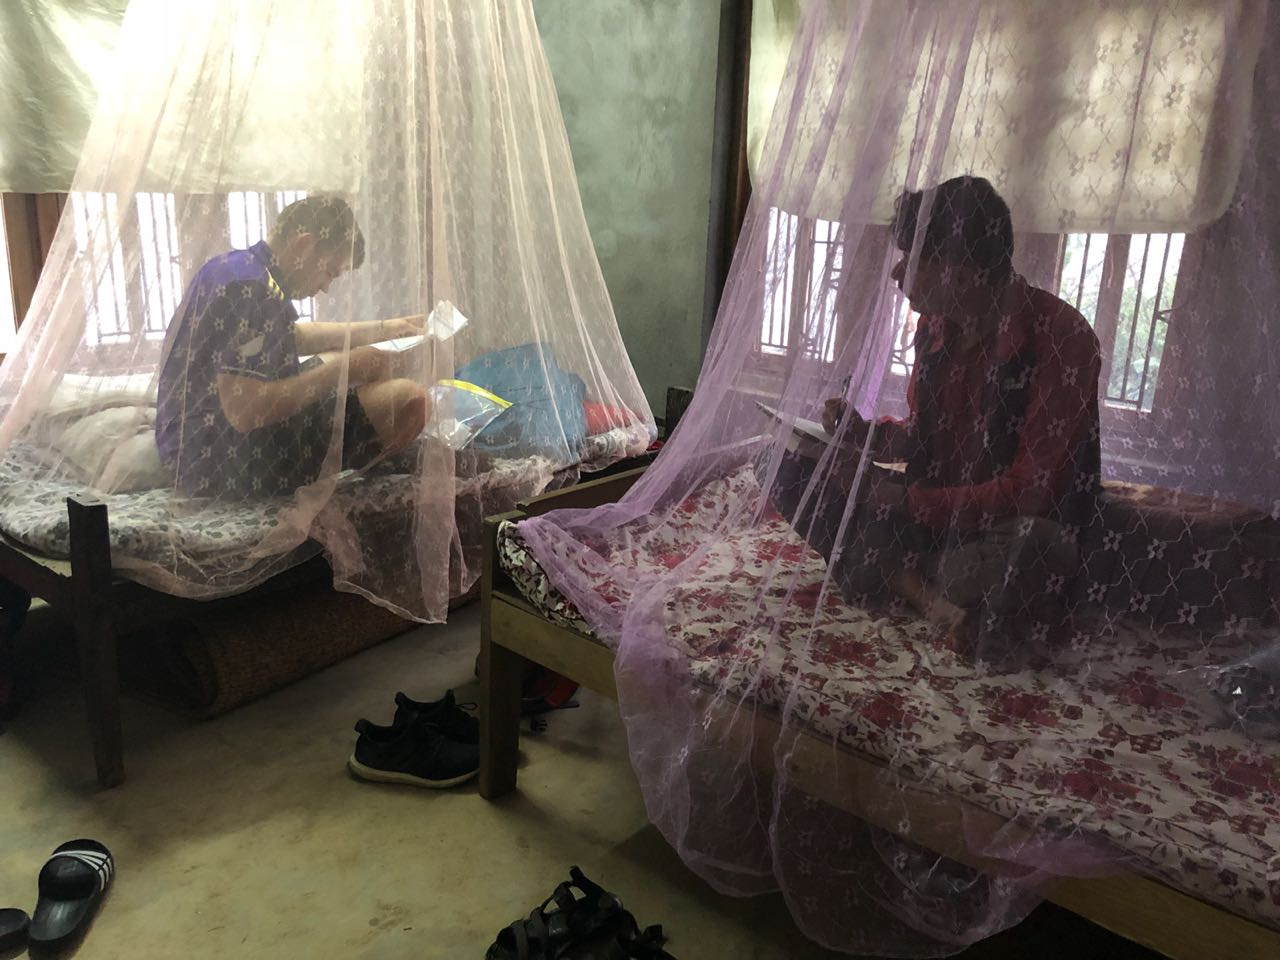 Tom and Amrit get down to work beneath their Mosquito nets.